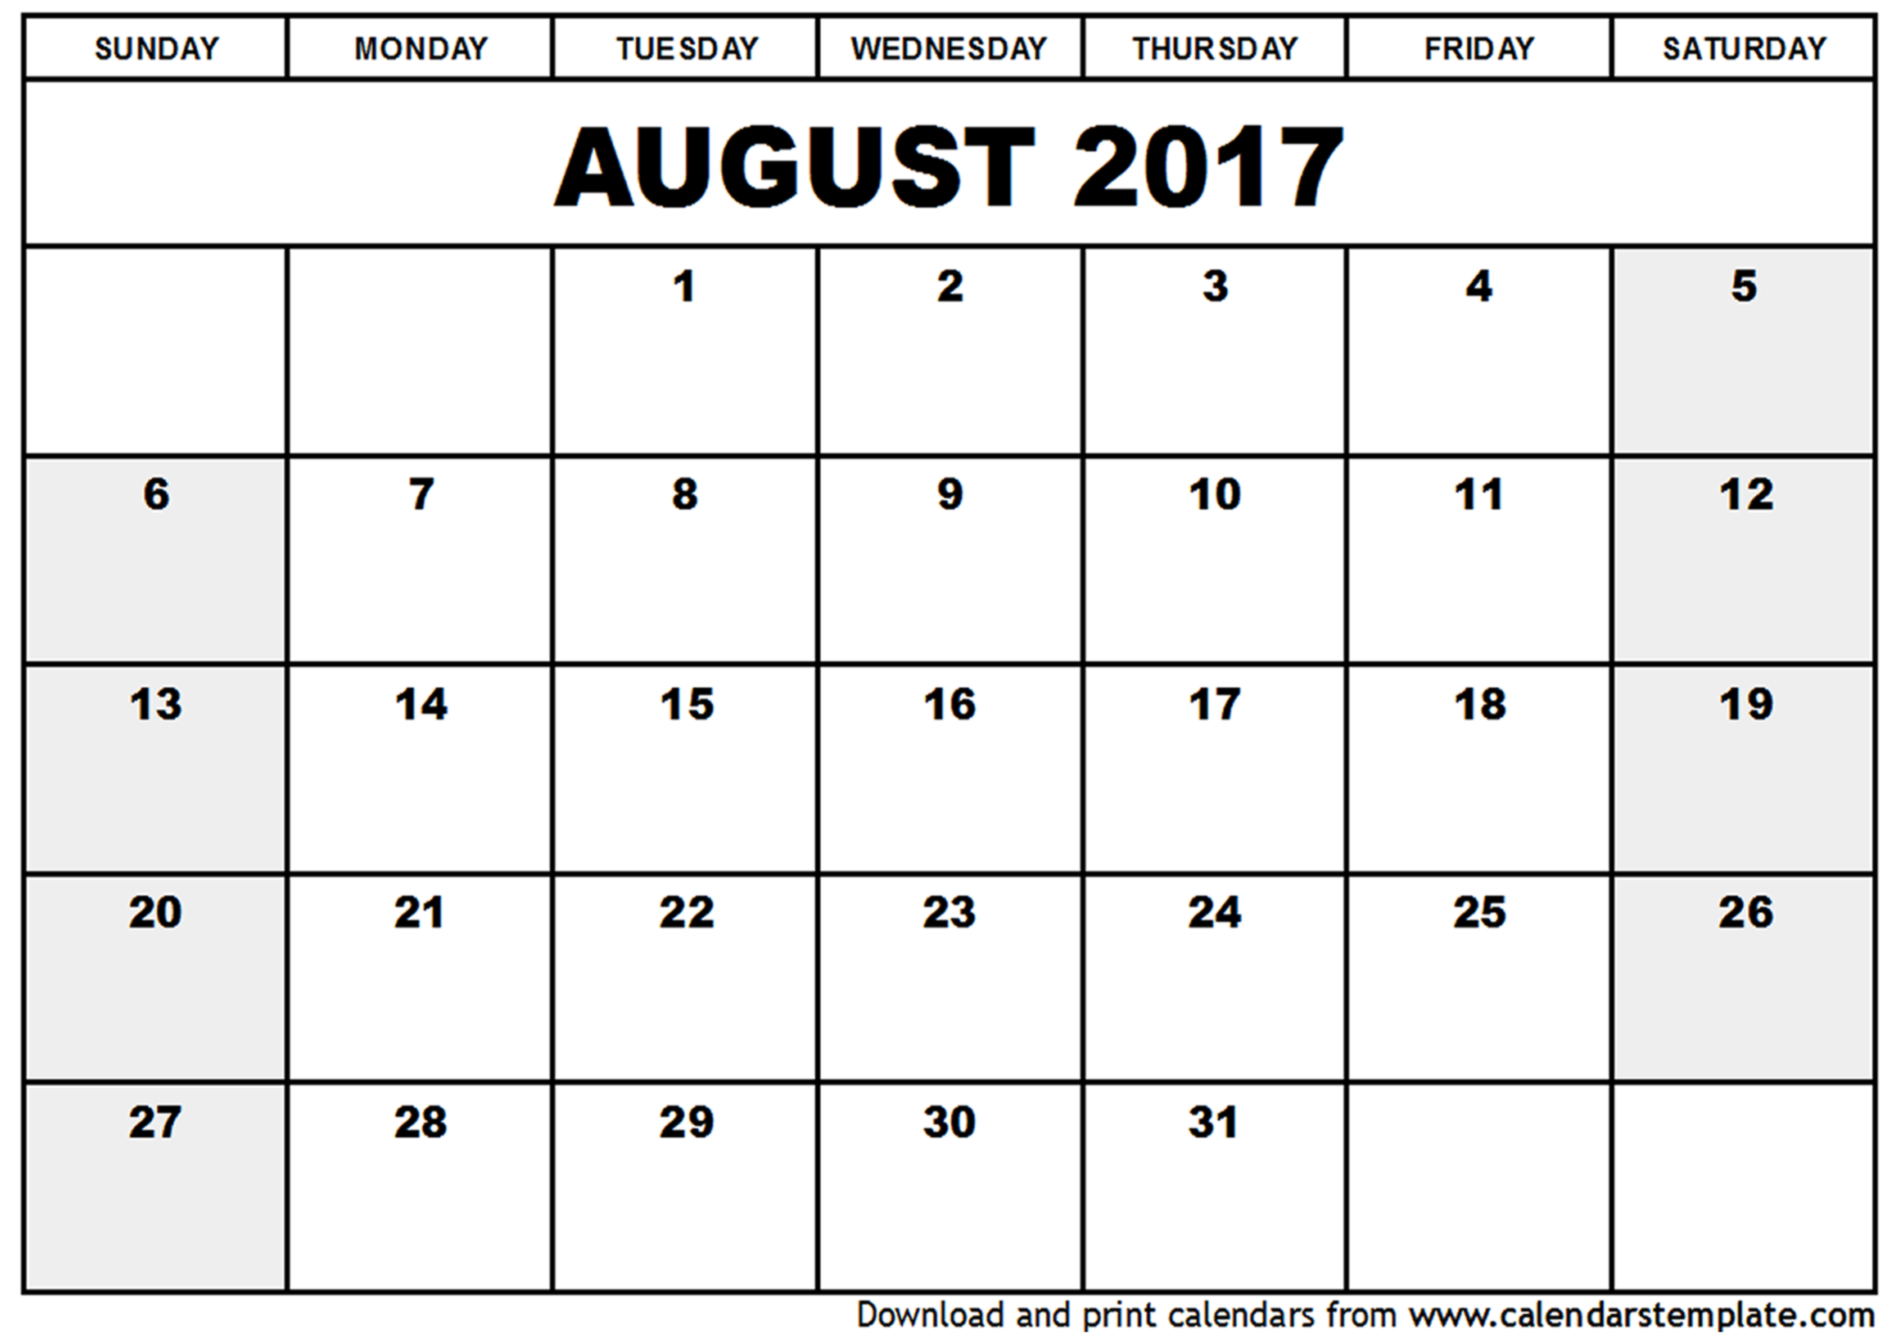 August 2017 Calendar Cute | weekly calendar template